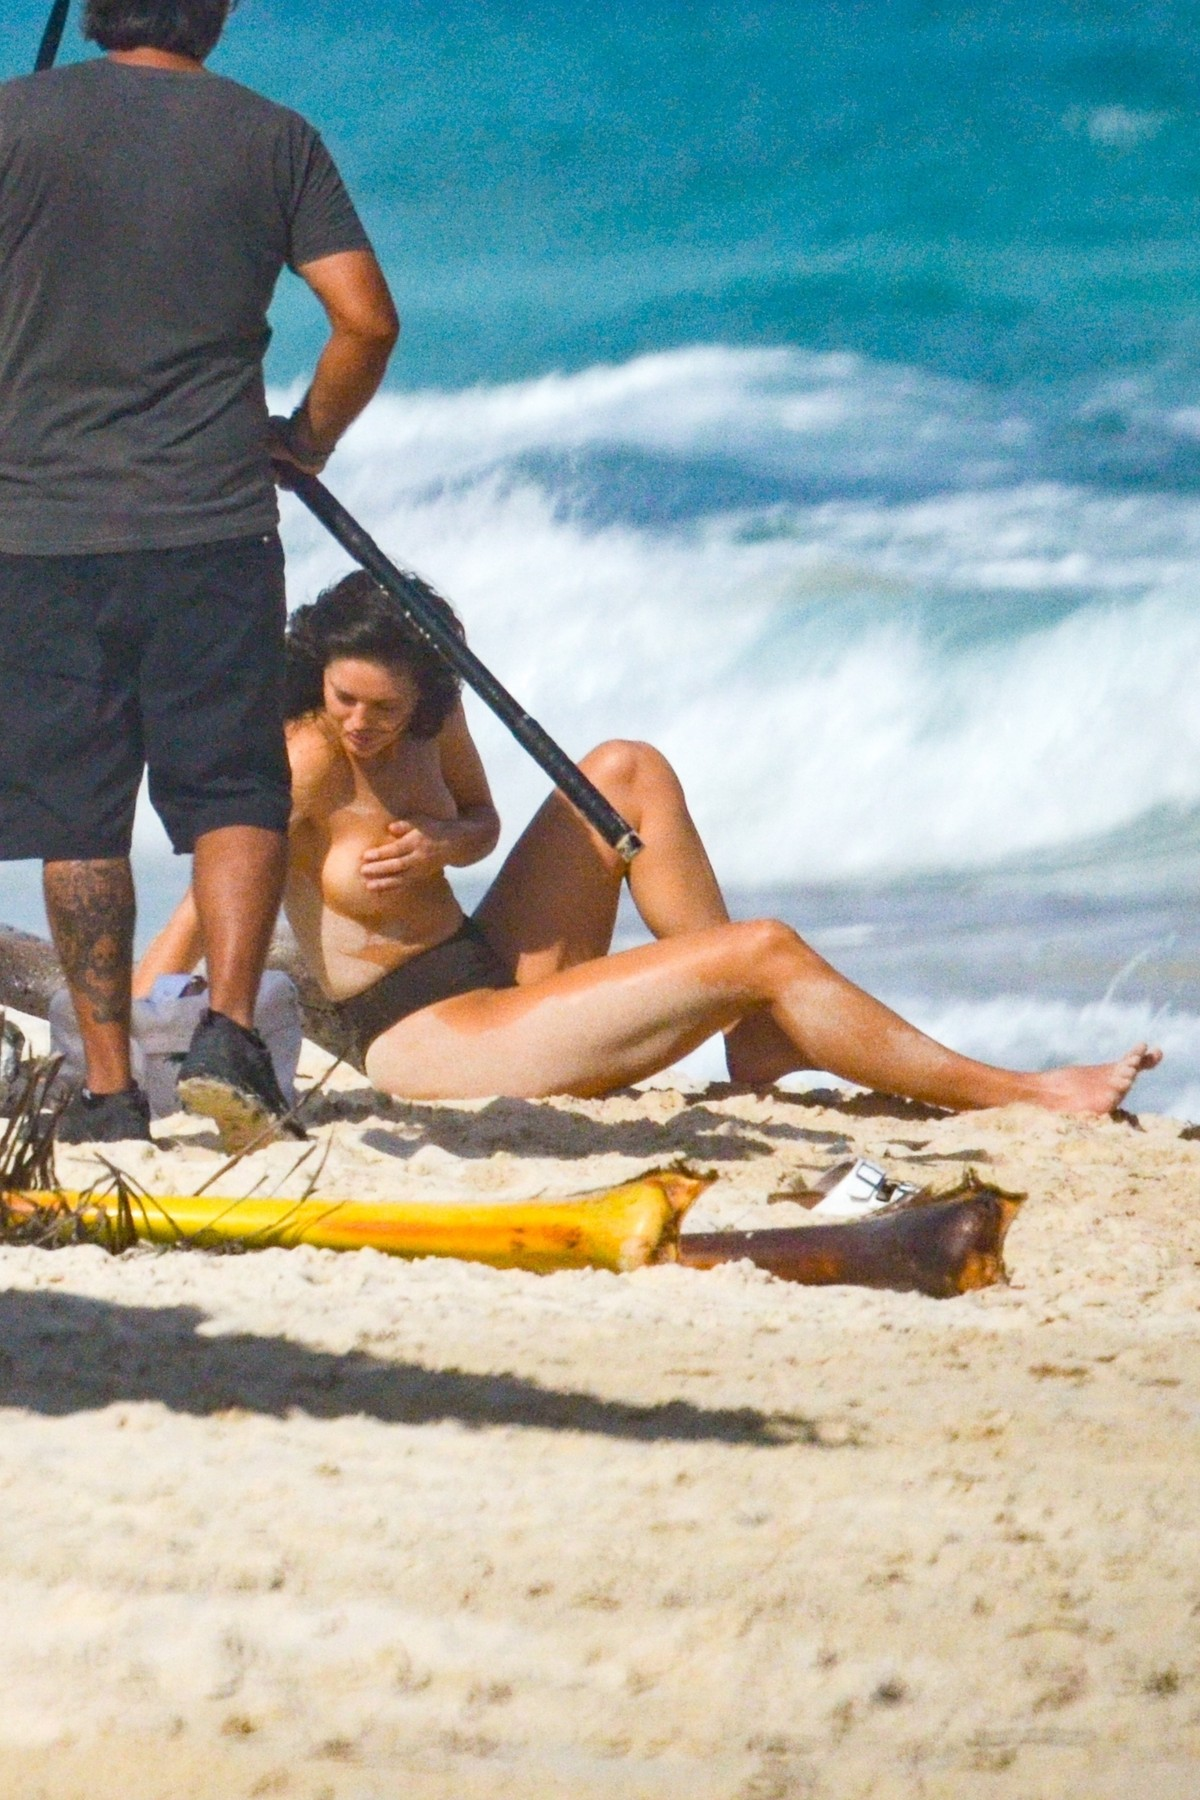 Tulum, MEXICO  - *EXCLUSIVE* - Model Emily DiDonato goes topless for a photoshoot in Tulum. The model has an extensive crew prep her hair and makeup for the shoot. Emily has a few outfit changes during the shoot changing into a red high-waisted bikini.  *UK Clients - Pictures Containing Children Please Pixelate Face Prior To Publication*, Image: 498239523, License: Rights-managed, Restrictions: , Model Release: no, Credit line: BACKGRID / Backgrid USA / Profimedia